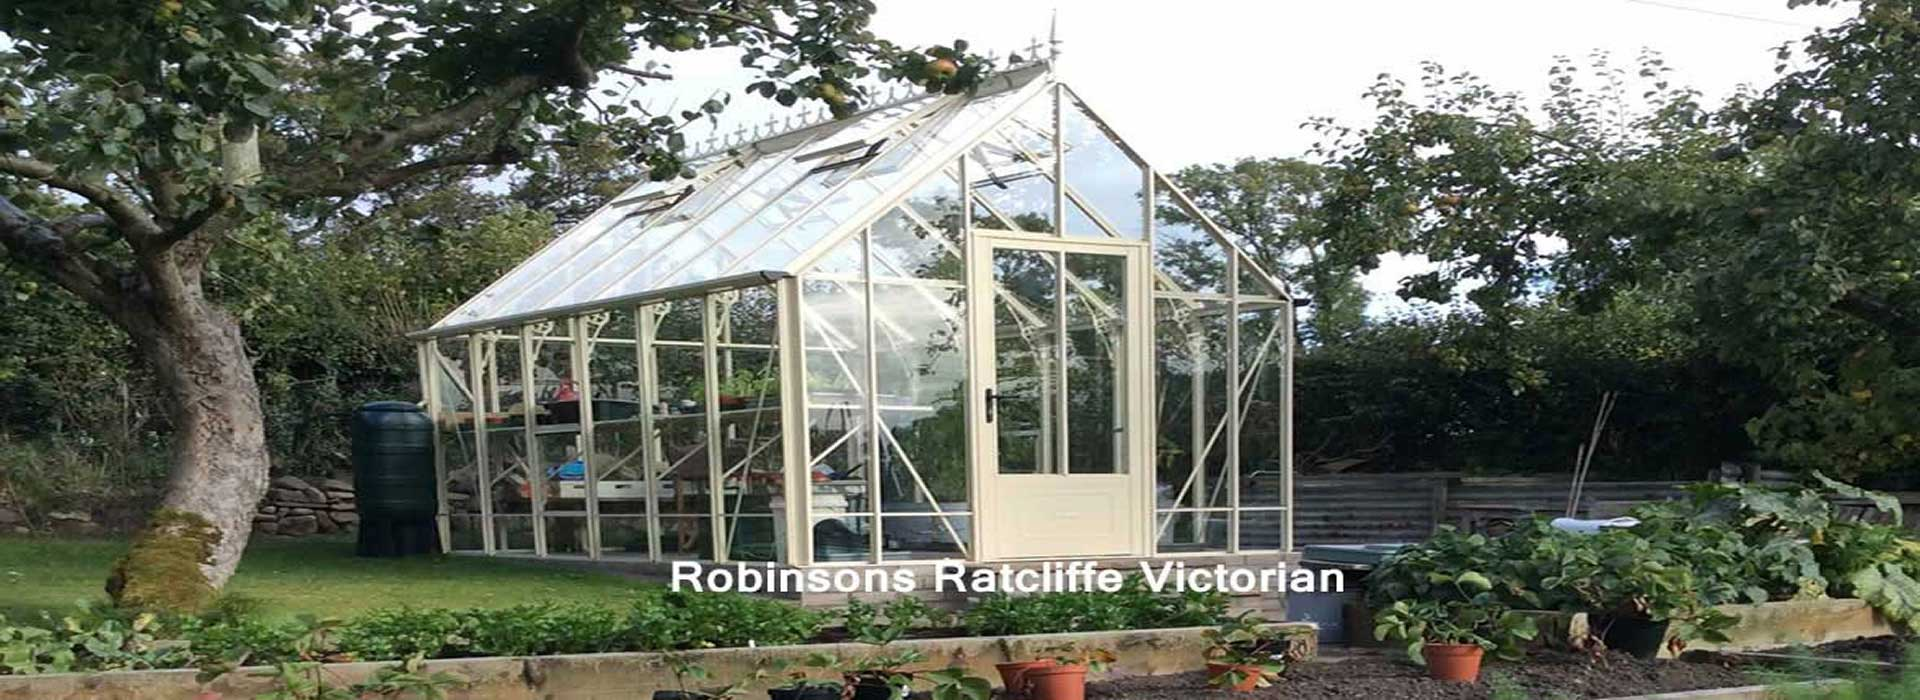 Robinsons Ratliffe Victorian Greenhouses